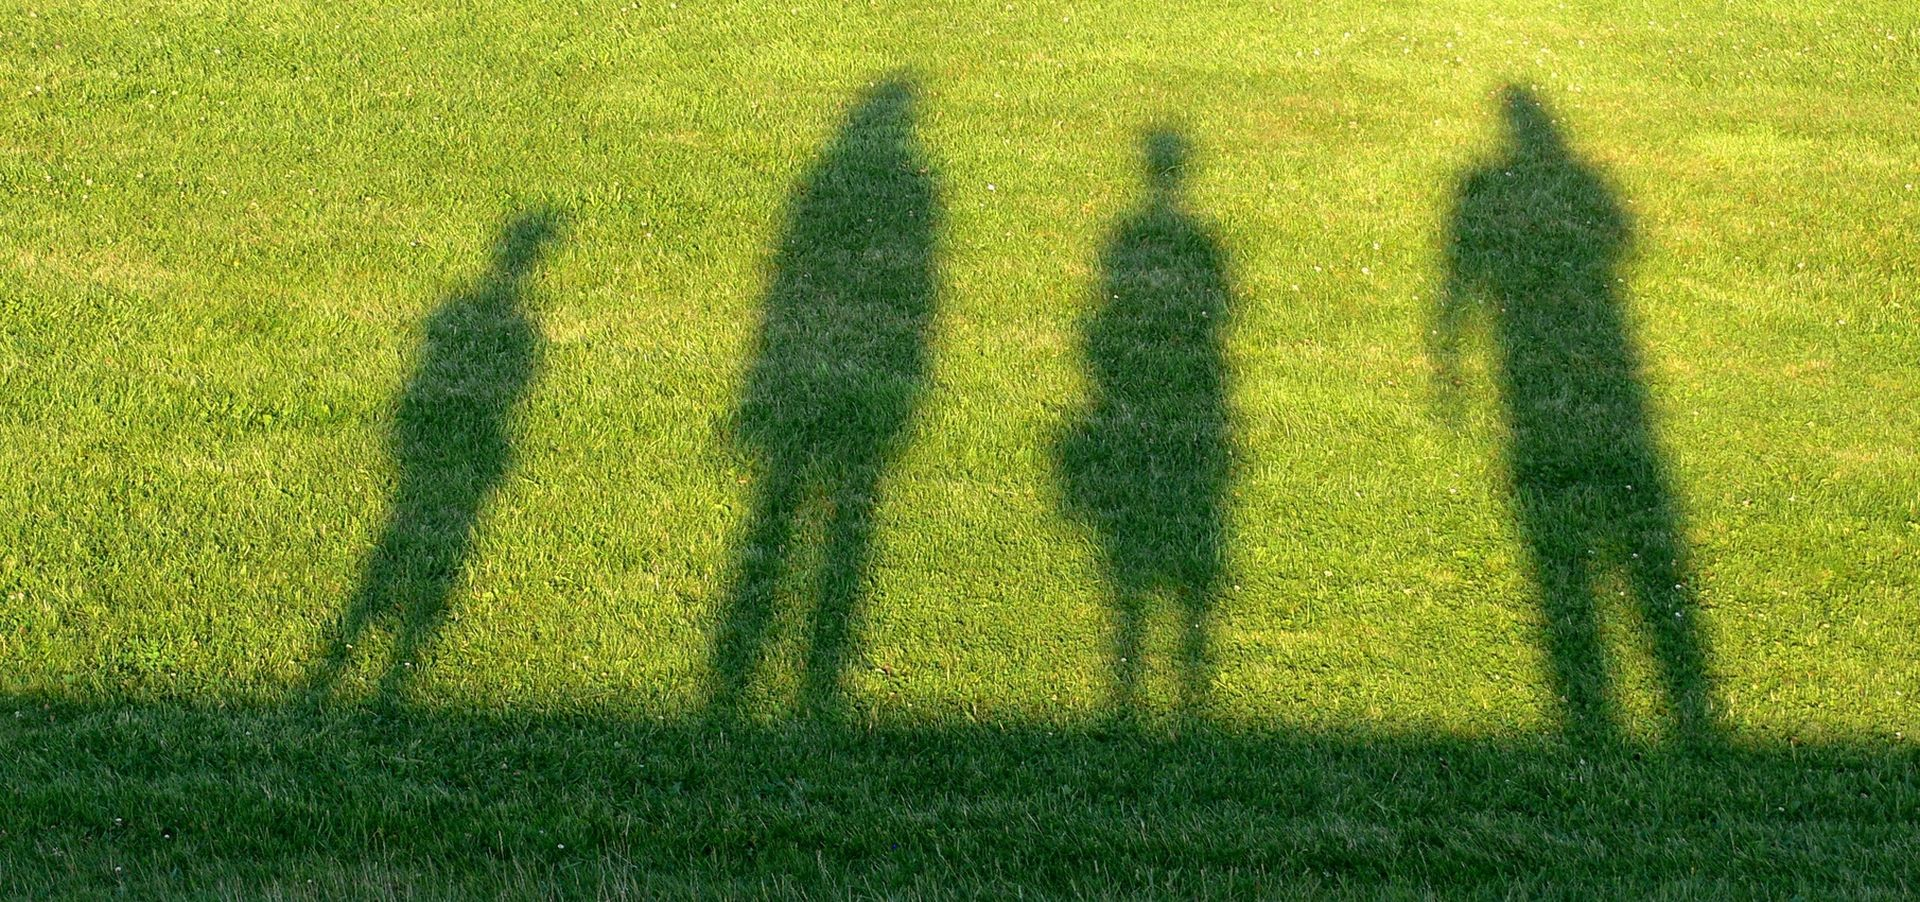 shadows of children and adults against green grass